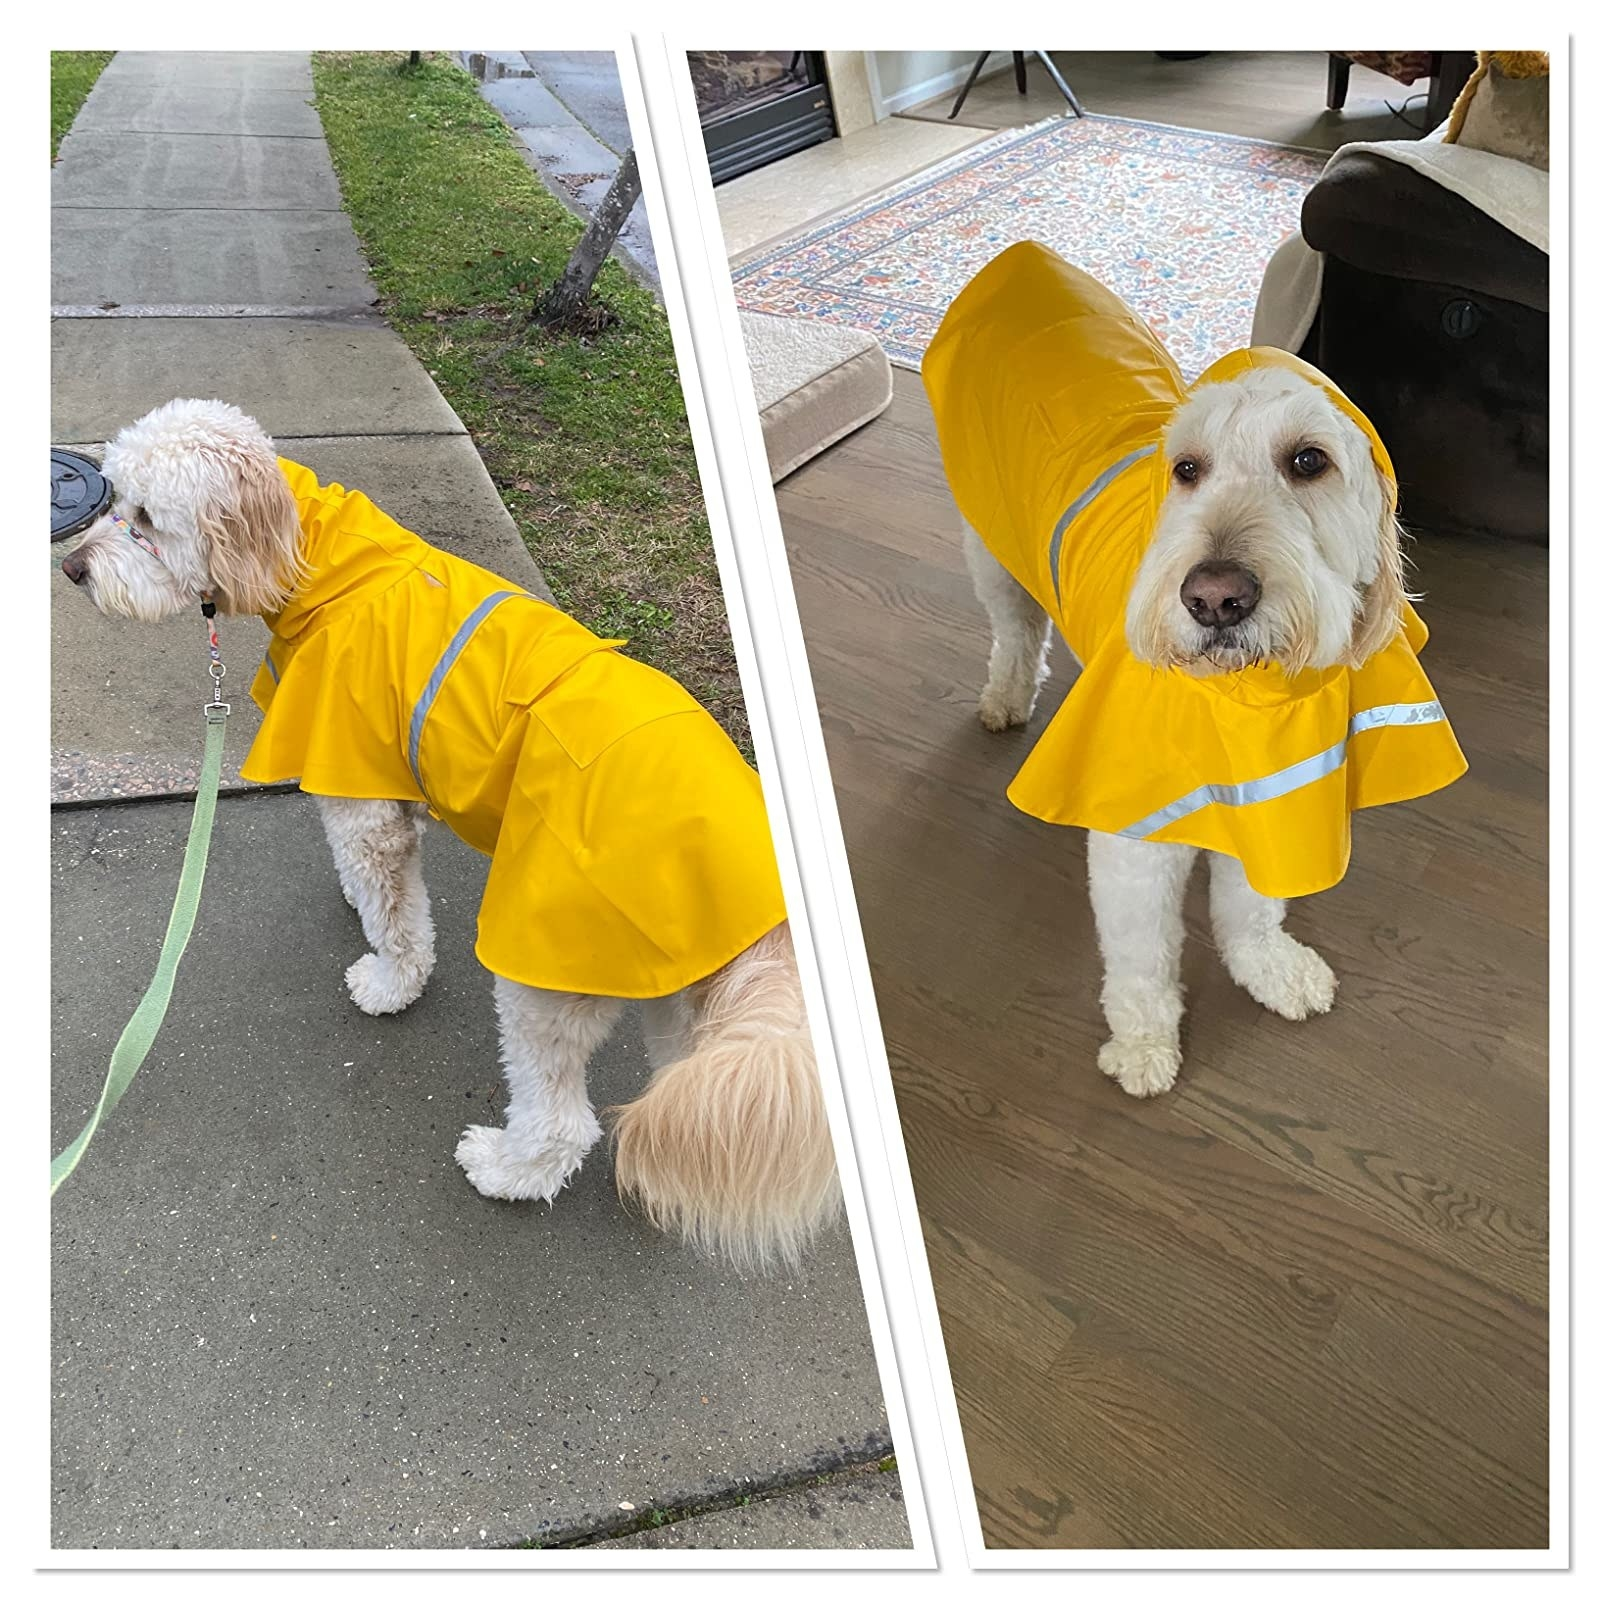 A dog wearing the raincoat, which had a small hood and runs down their backs, covering the top of their hindquarters, in yellow